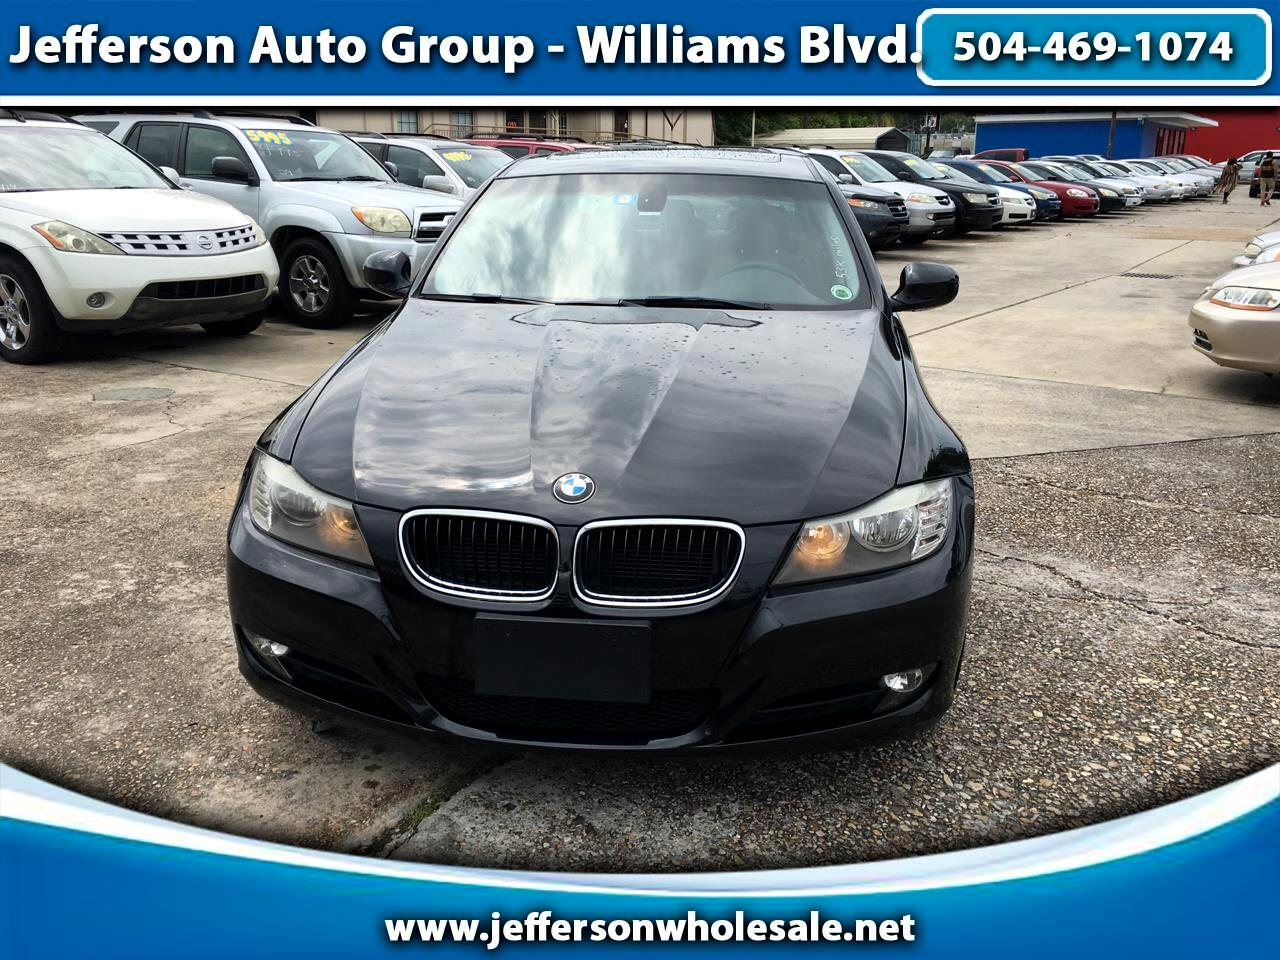 2011 BMW 3 Series 328i 4dr Sdn